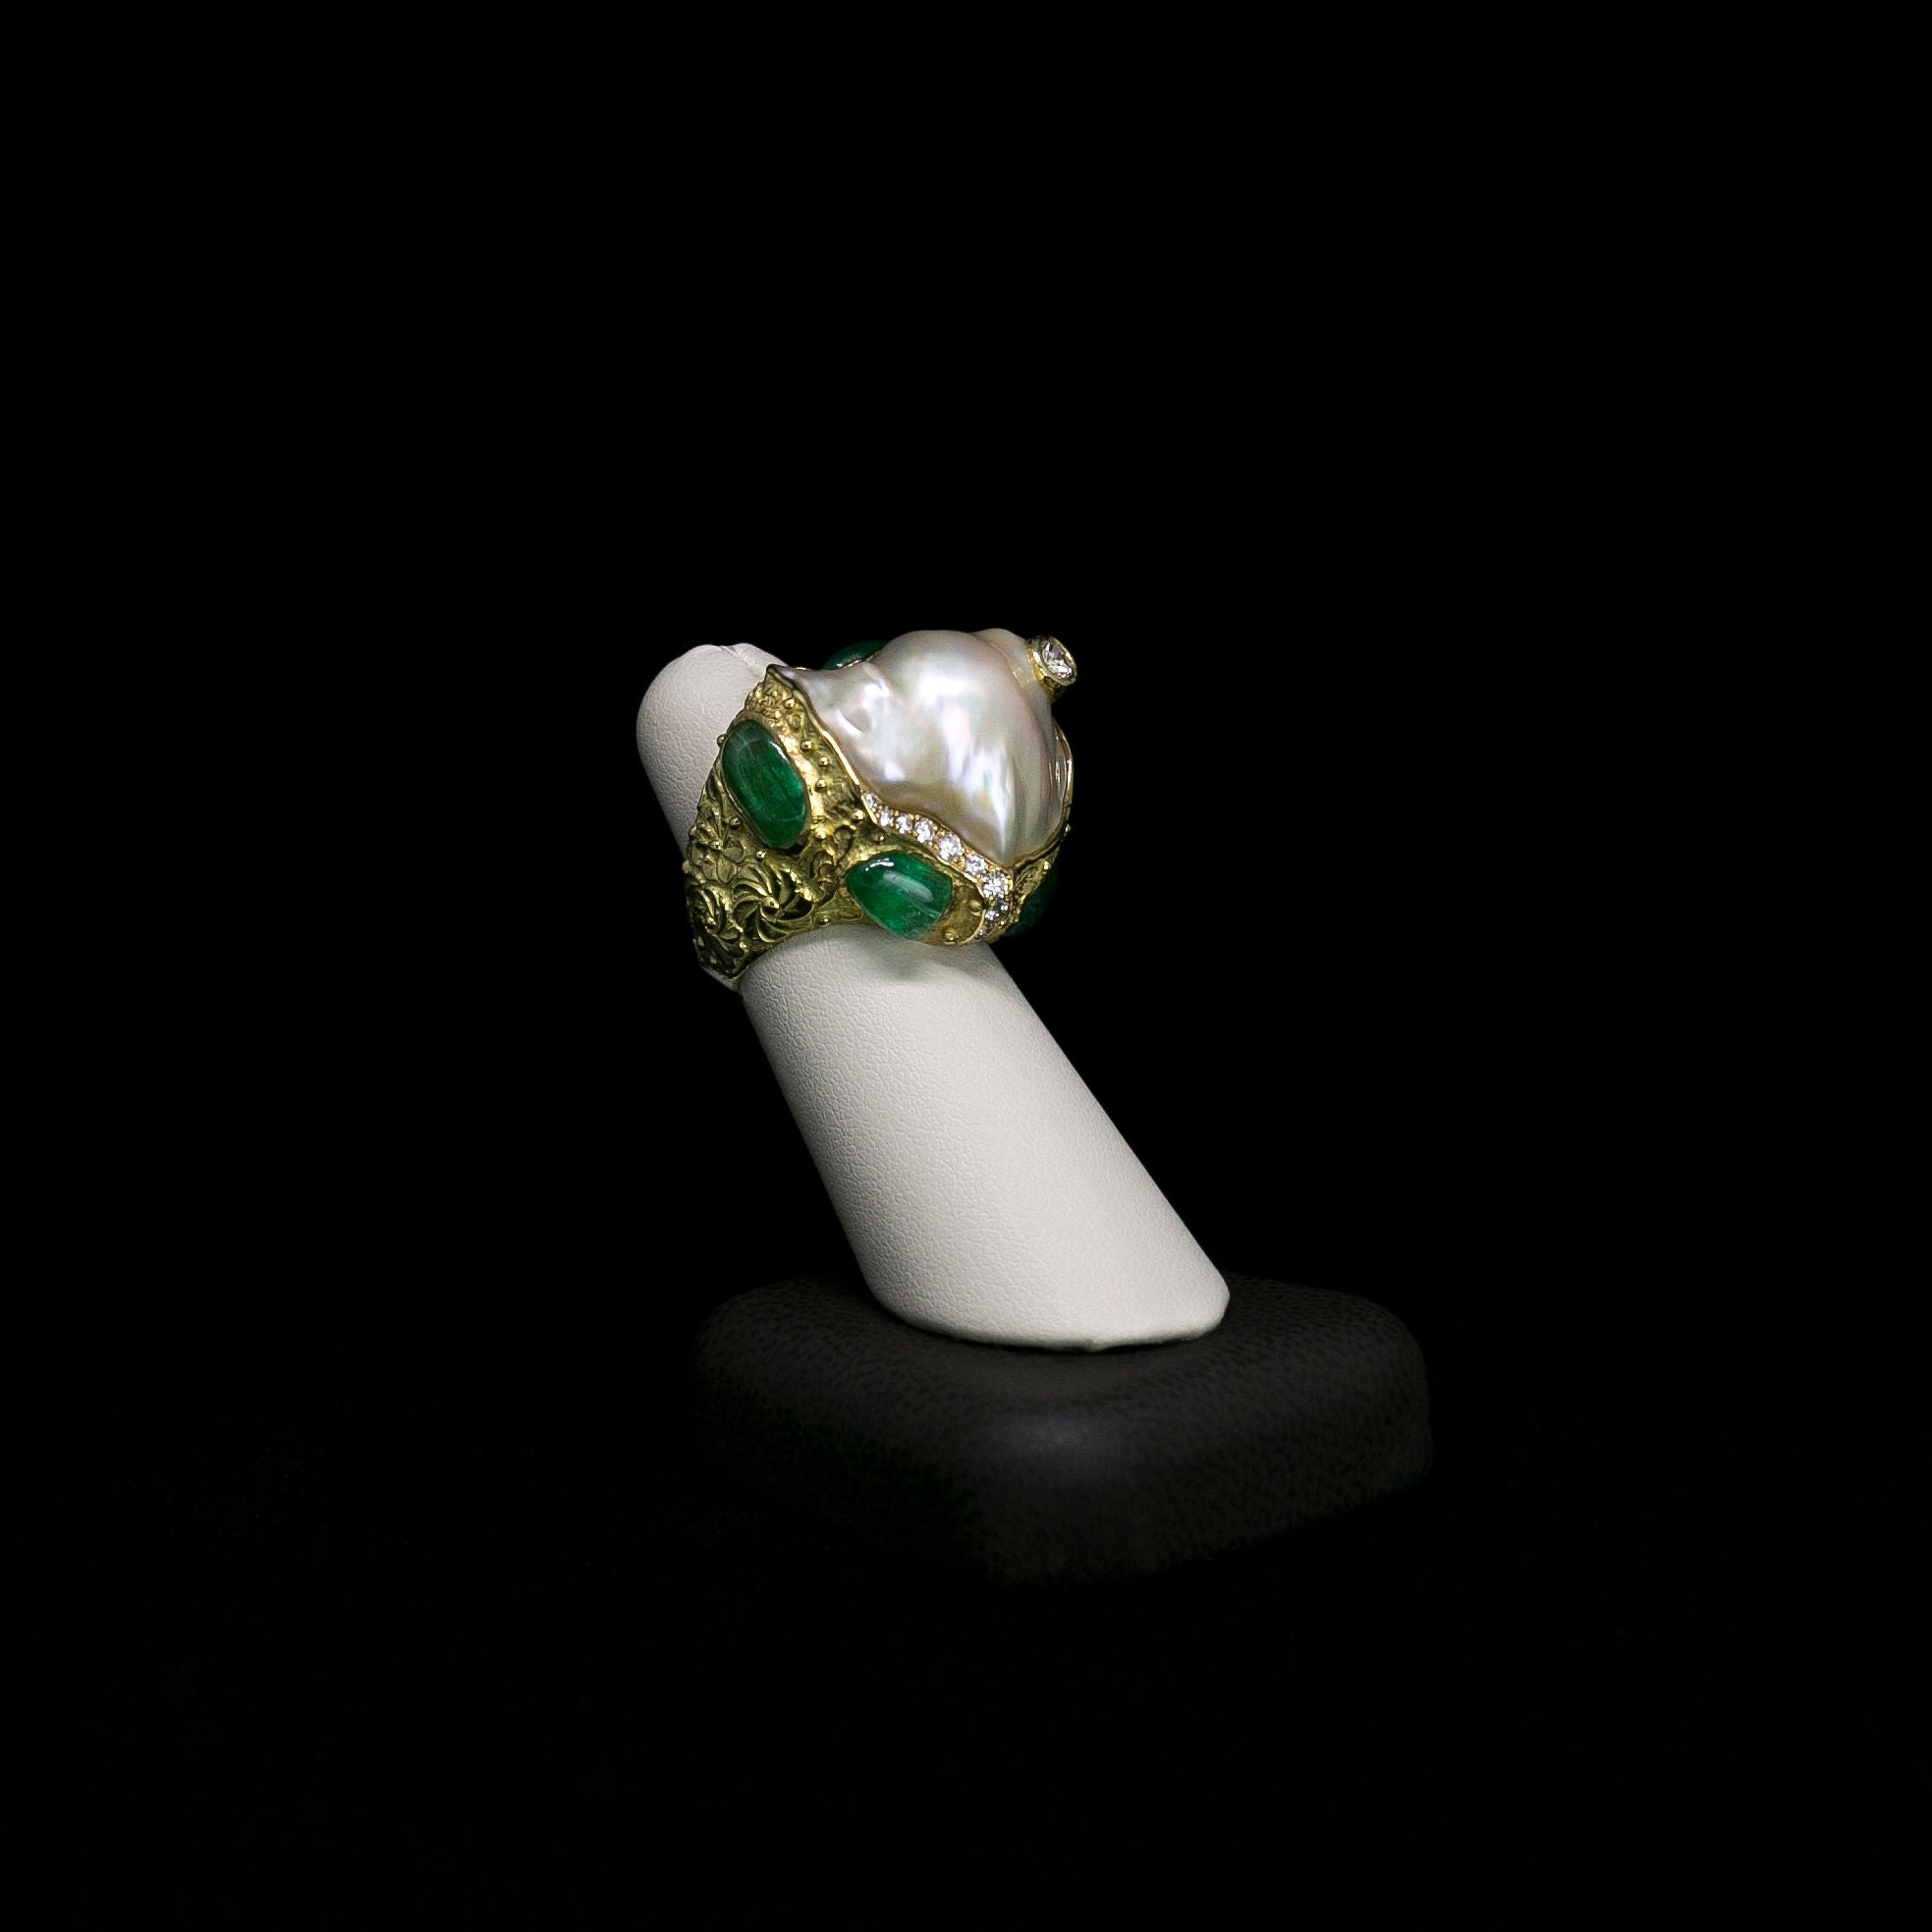 Henri Noël Jewelry vintage baroque pearl ring with emerald and diamond surrounds and set in gold.